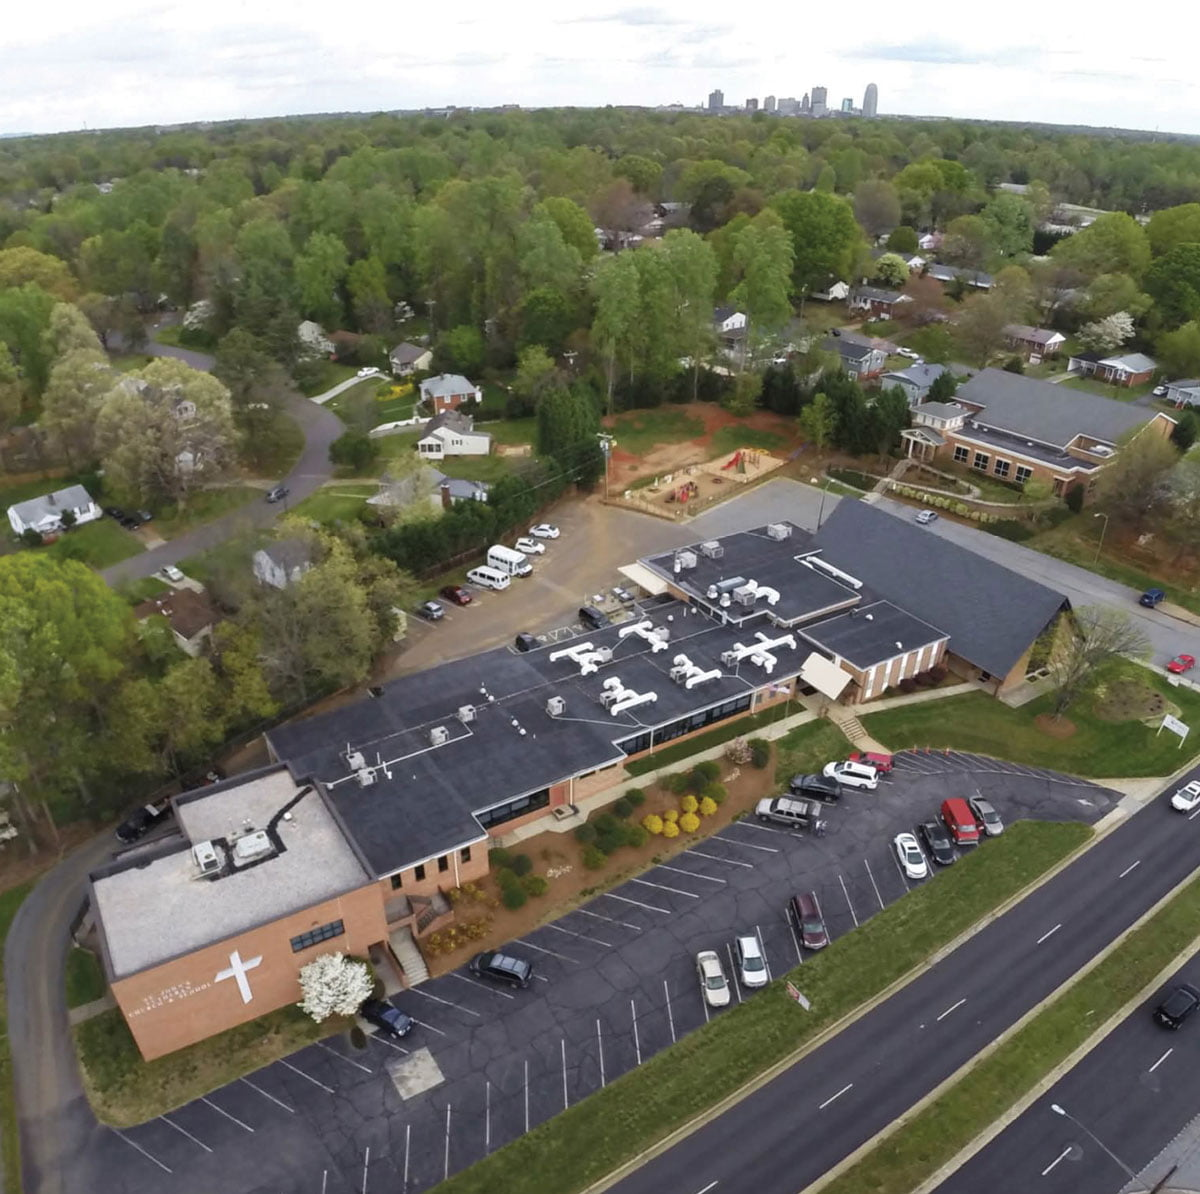 St. John's Lutheran Church & School Aerial Shot